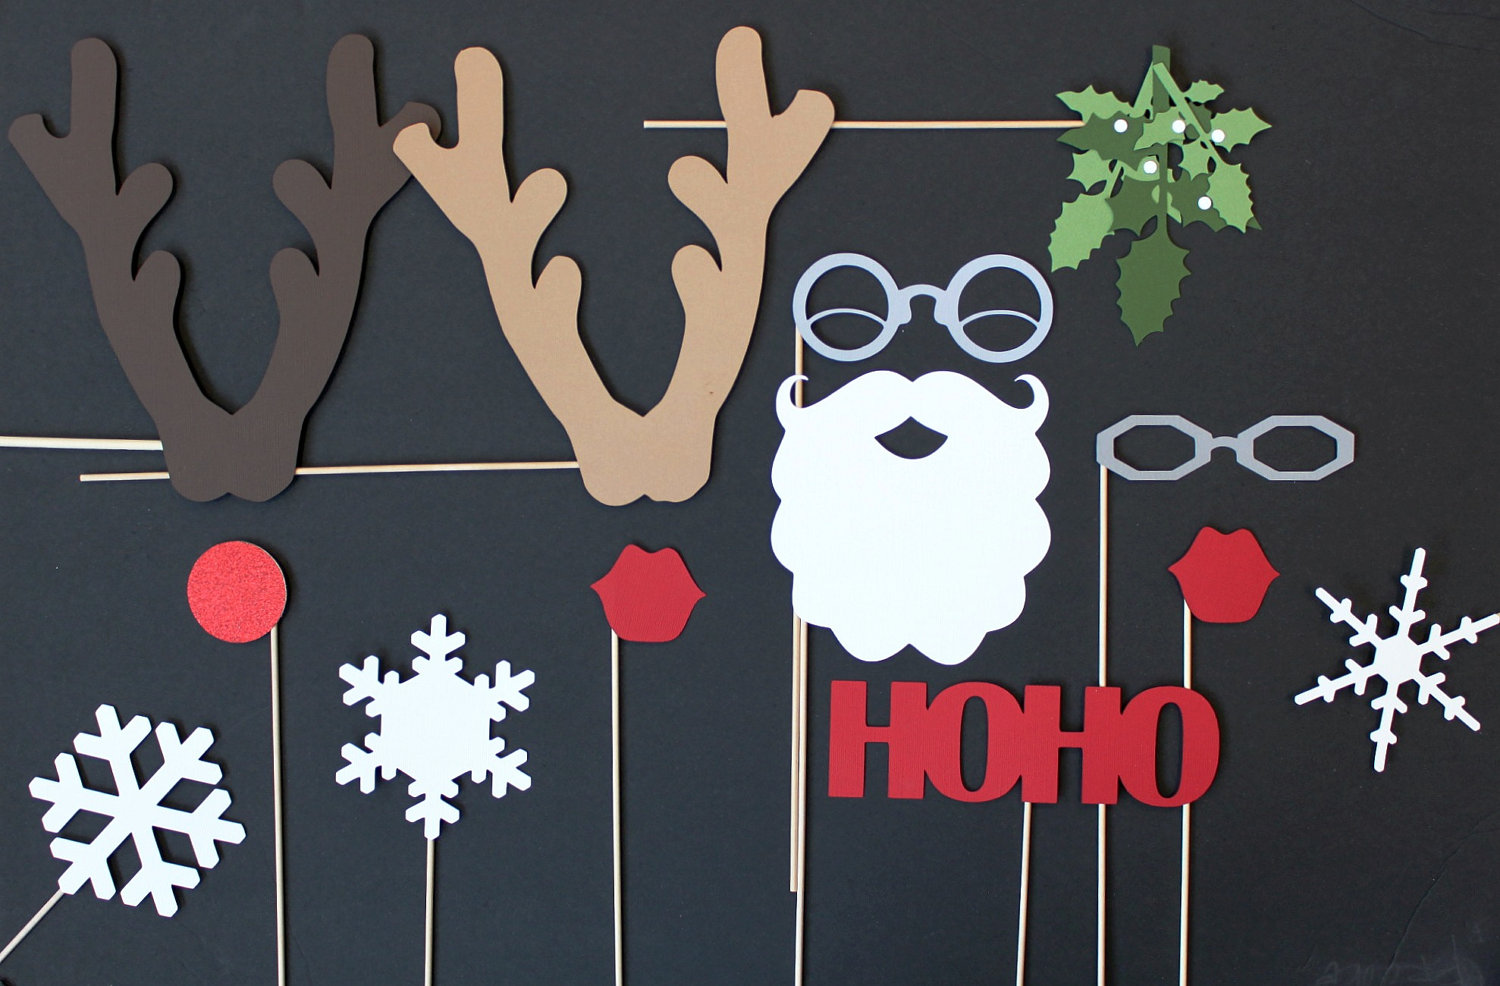 Holiday Wedding Fun Reception Photo Booth Props OneWedcom CVTFVoRD